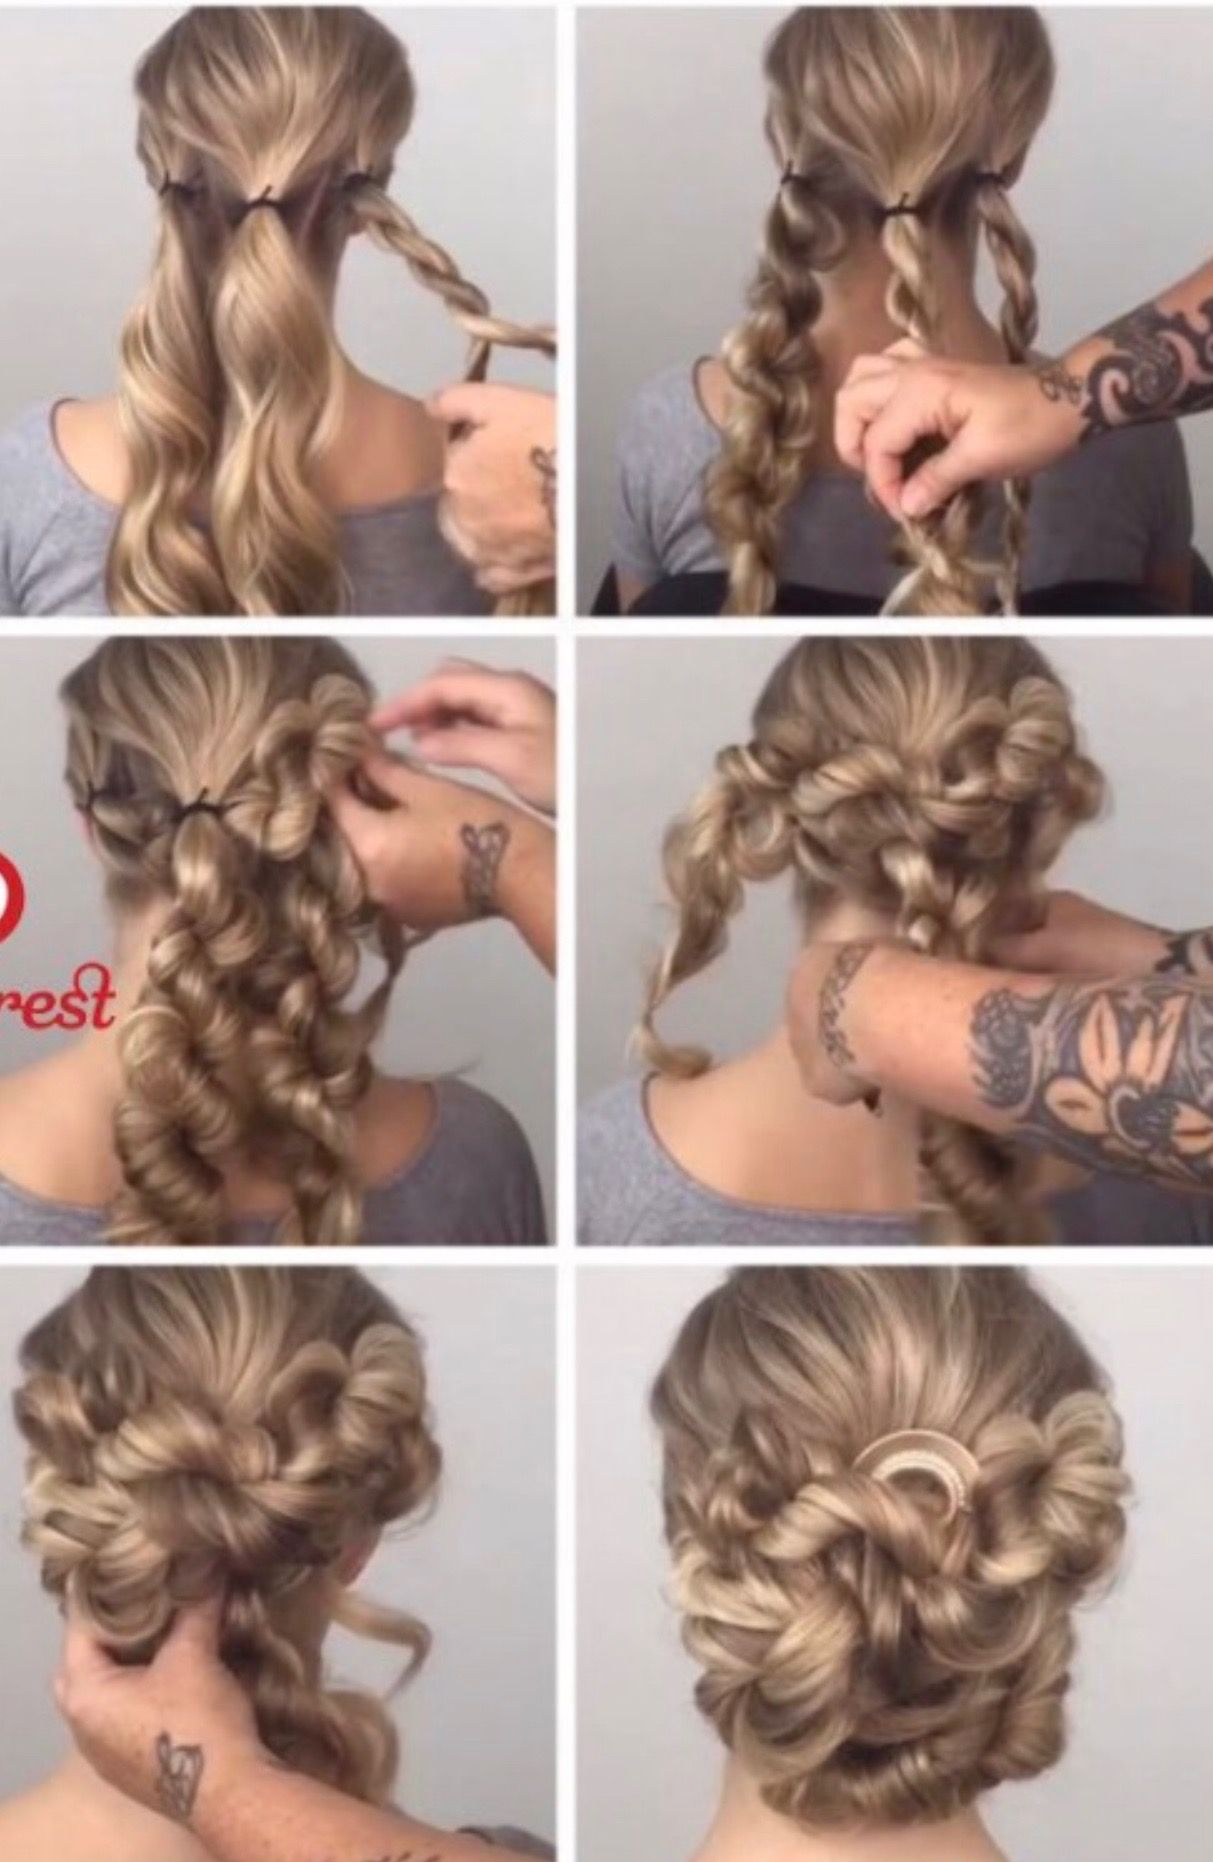 Pin By Jolie On Hair Bun Ideas Long Hair Styles Prom